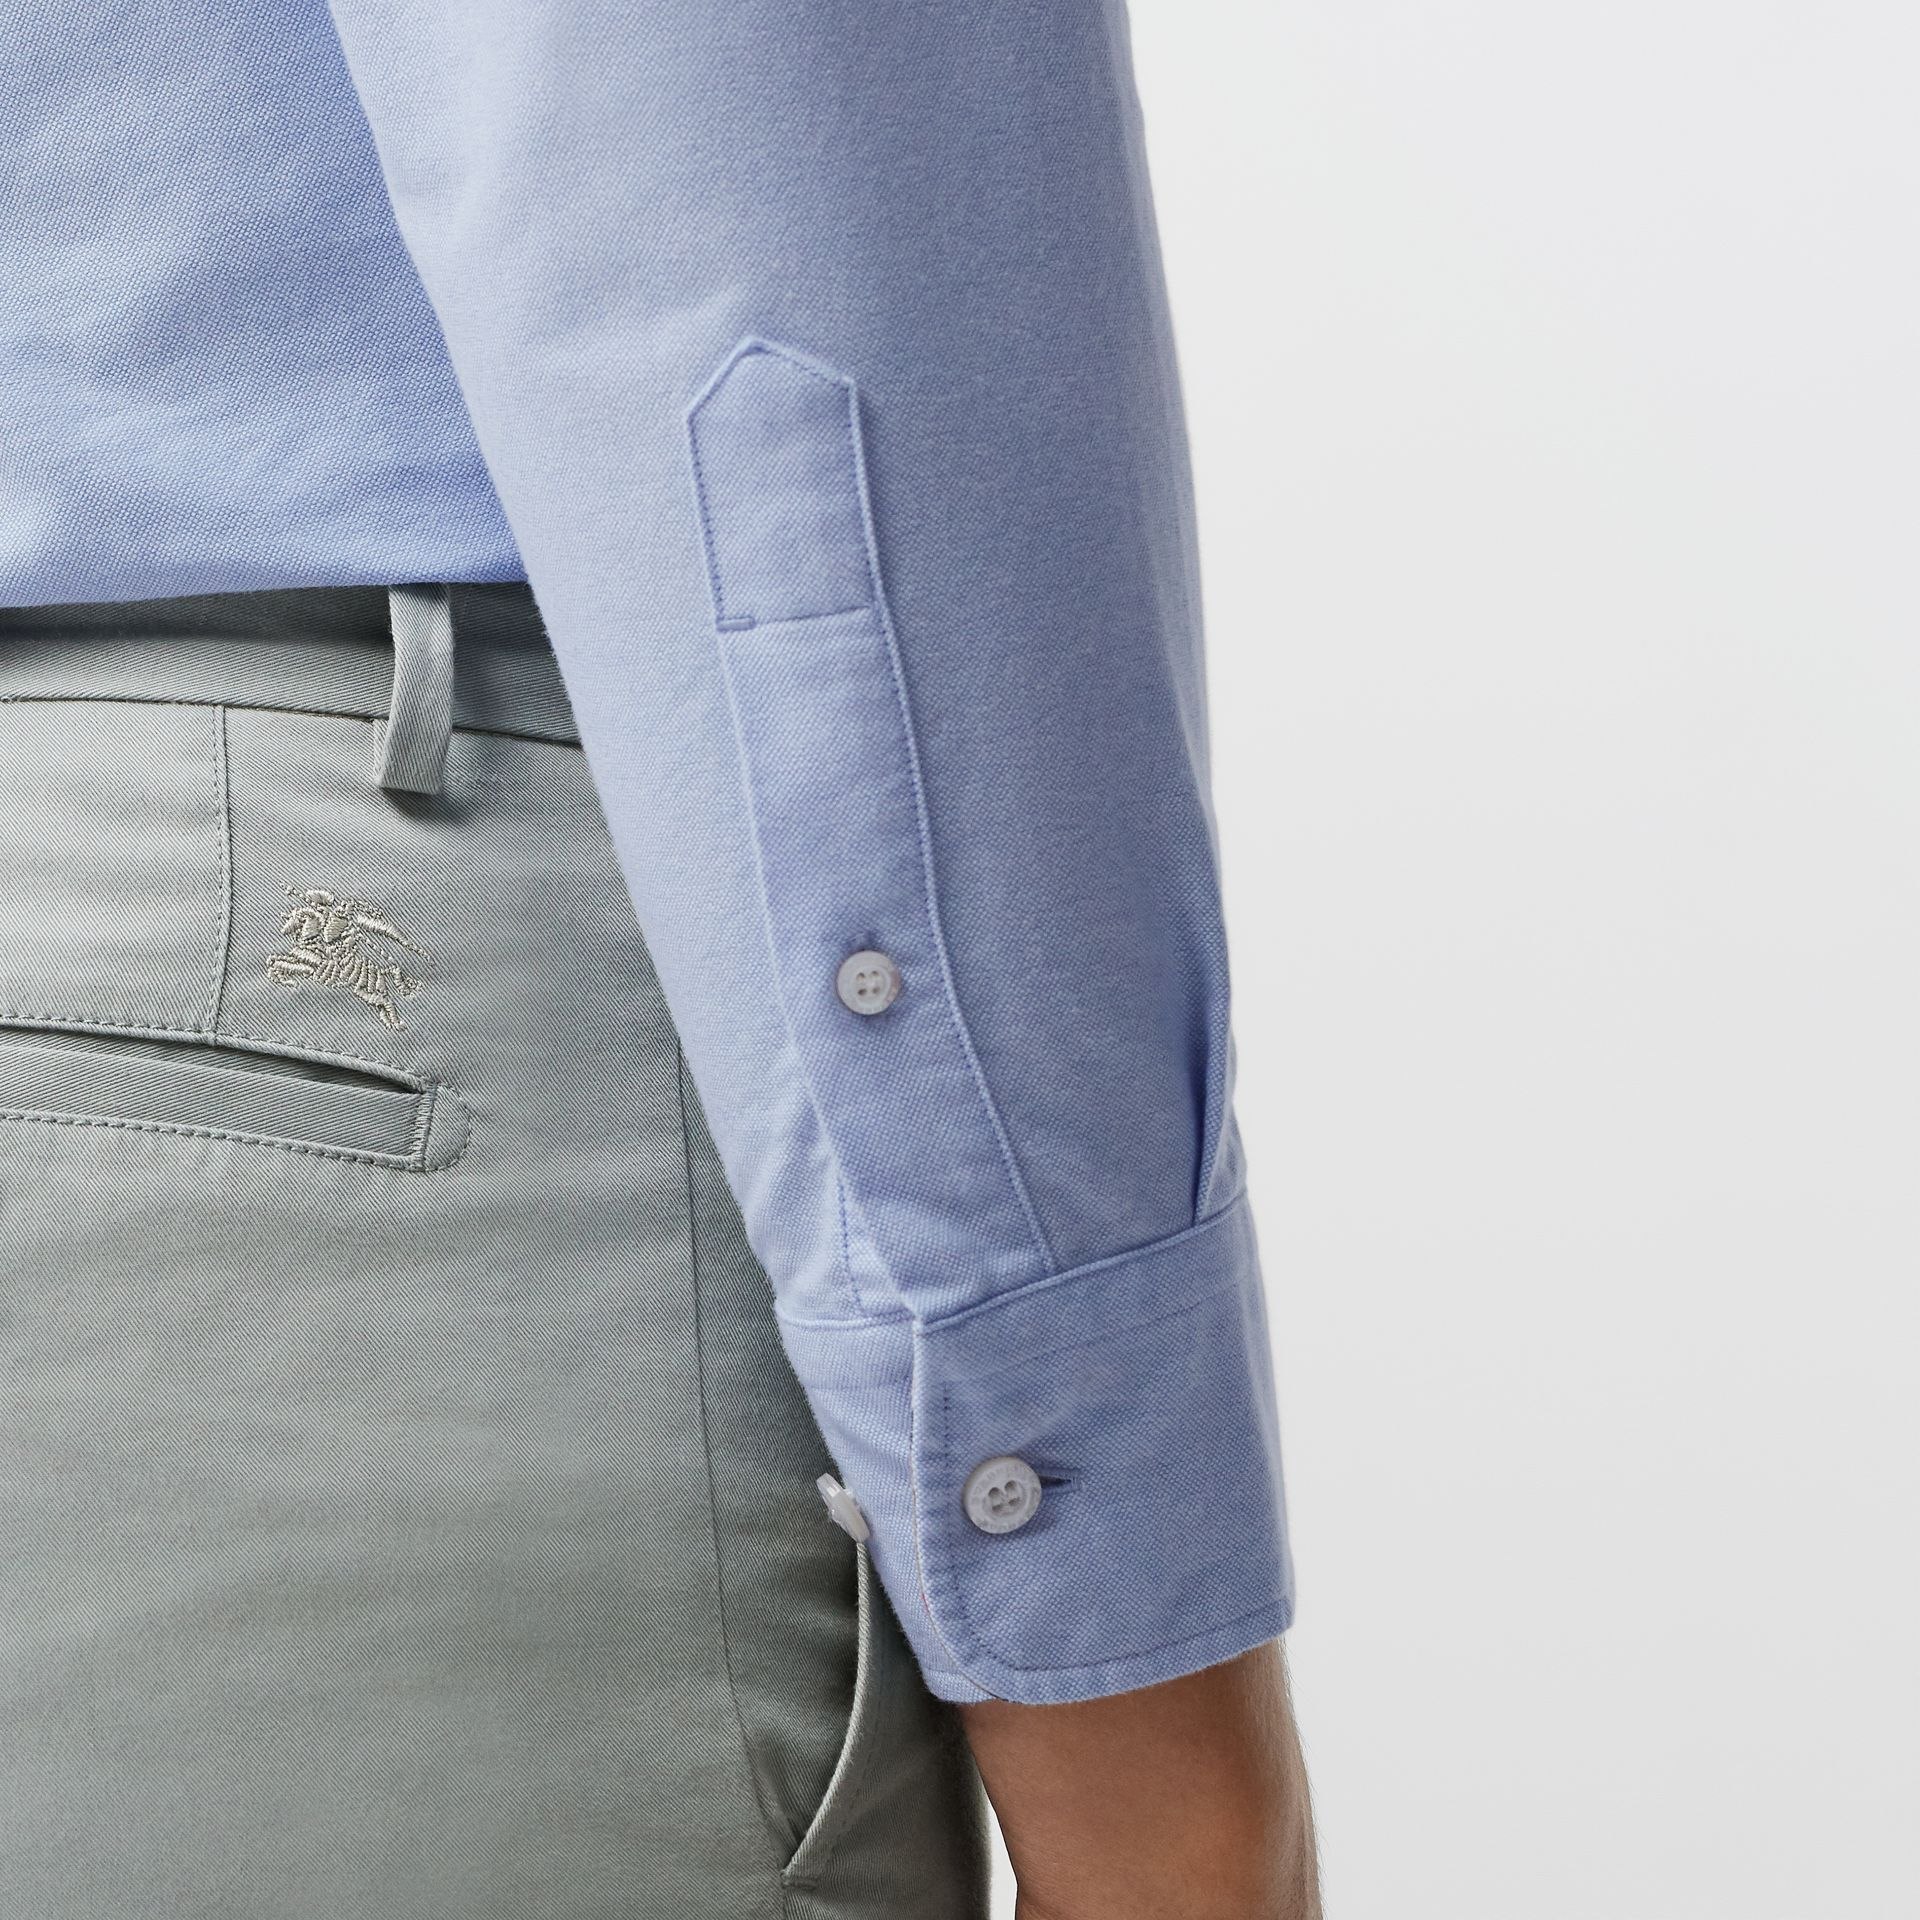 Slim Fit Cotton Chinos in Blue Grey - Men | Burberry - gallery image 1